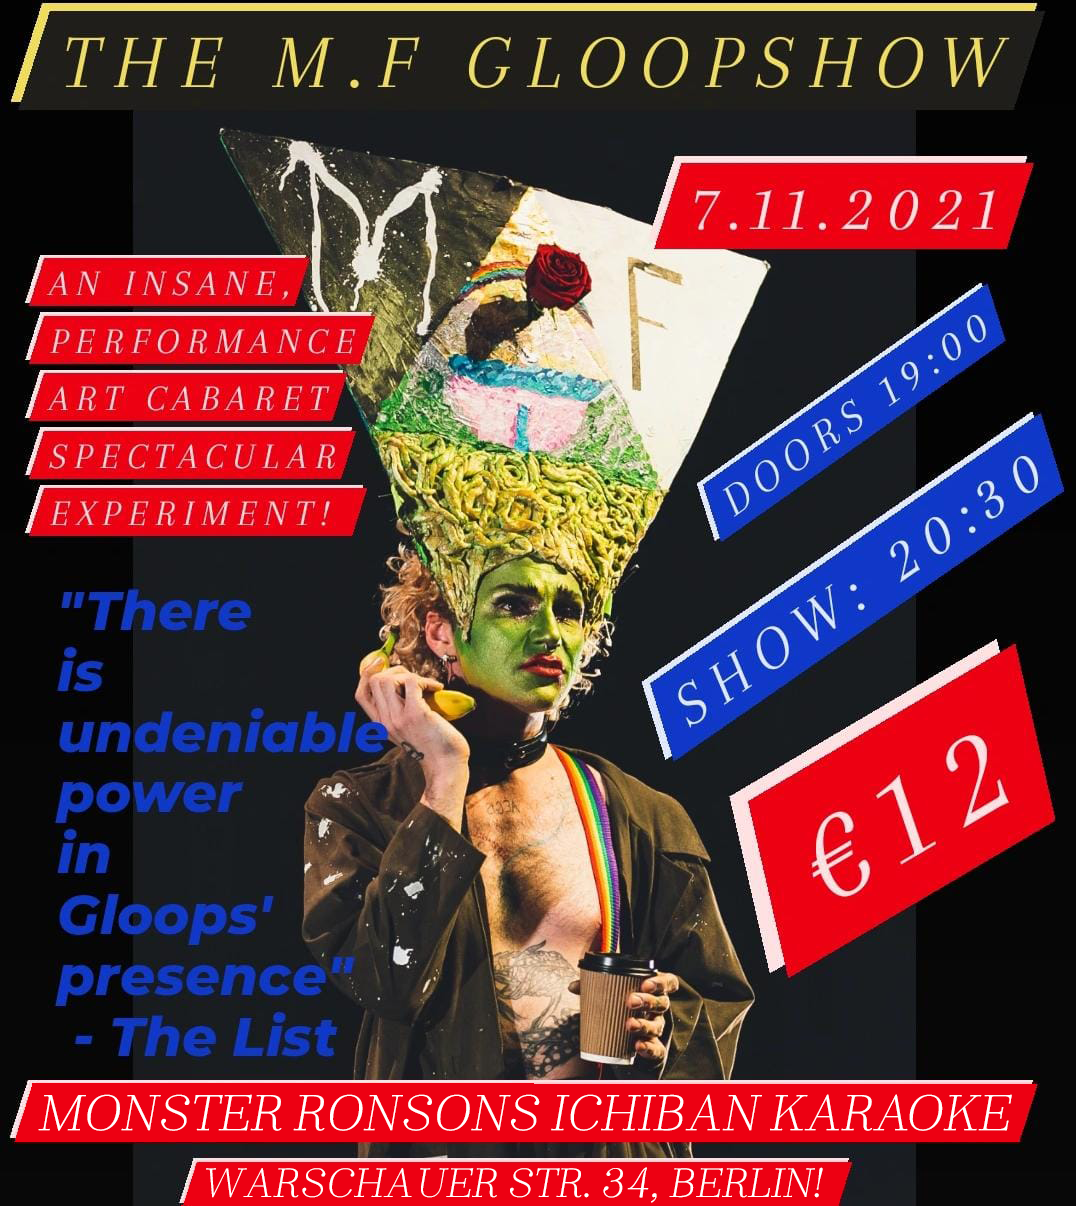 THE M.F. GLOOPSHOW